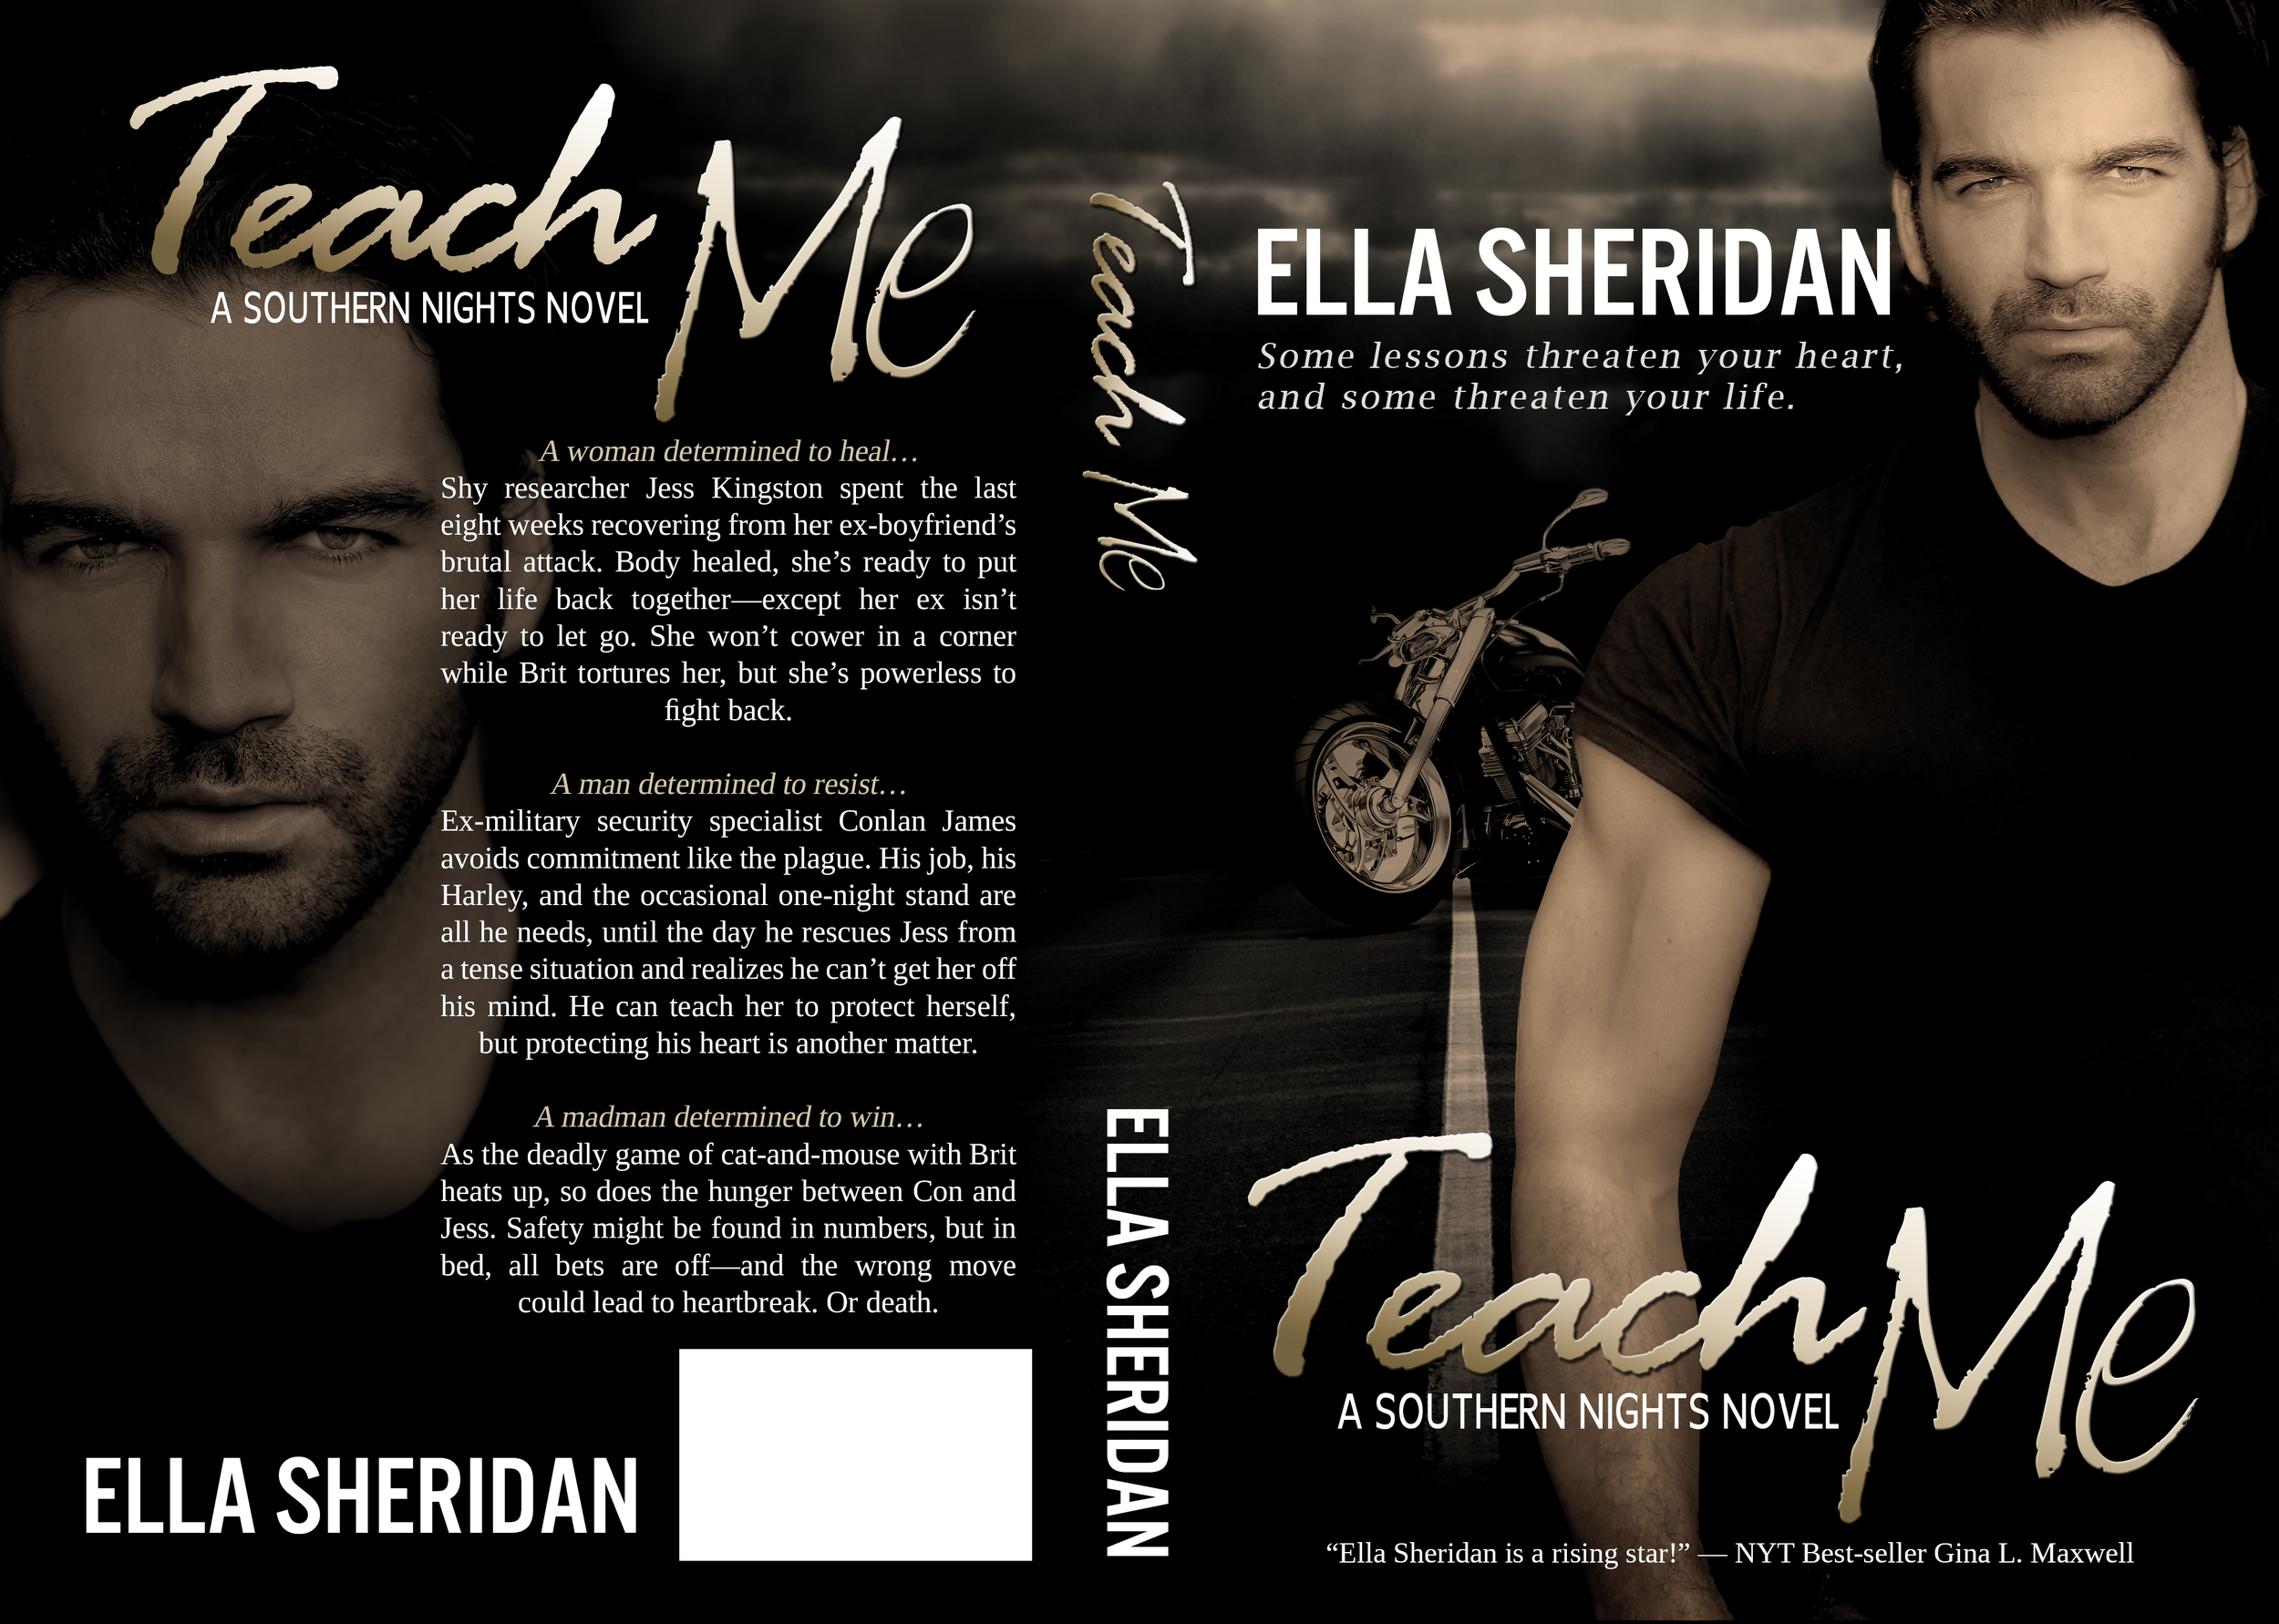 Ella Sheridan, writer, author, romance author, erotic romance, contemporary romance, romantic suspense, Teach Me, Southern Nights